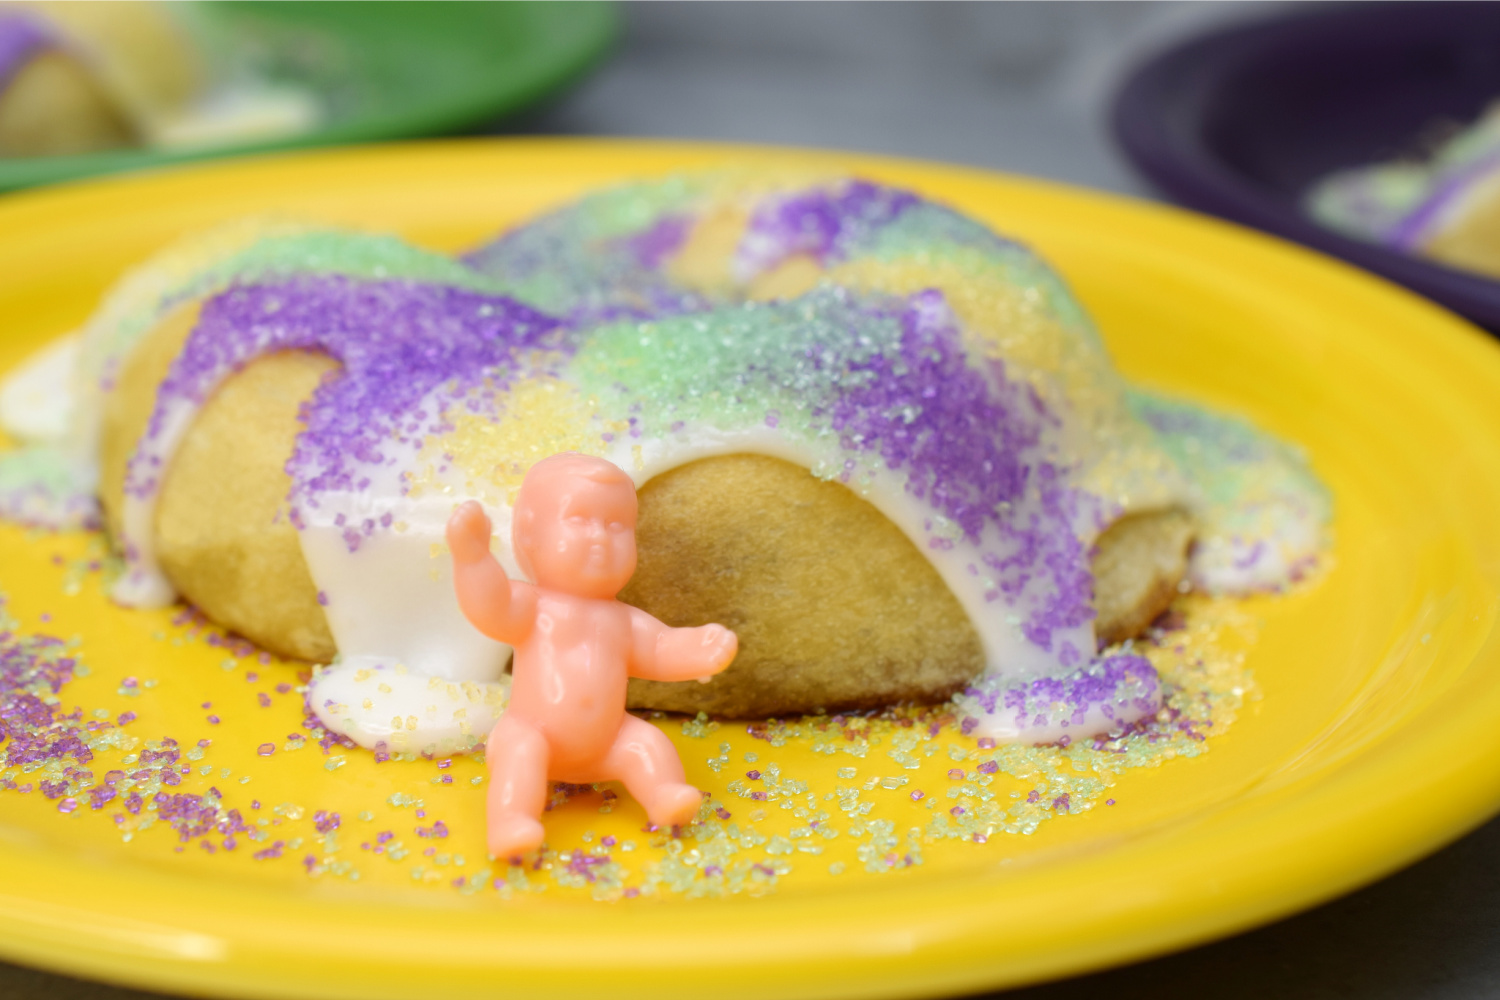 King Cake on a yellow plate with a plastic baby.